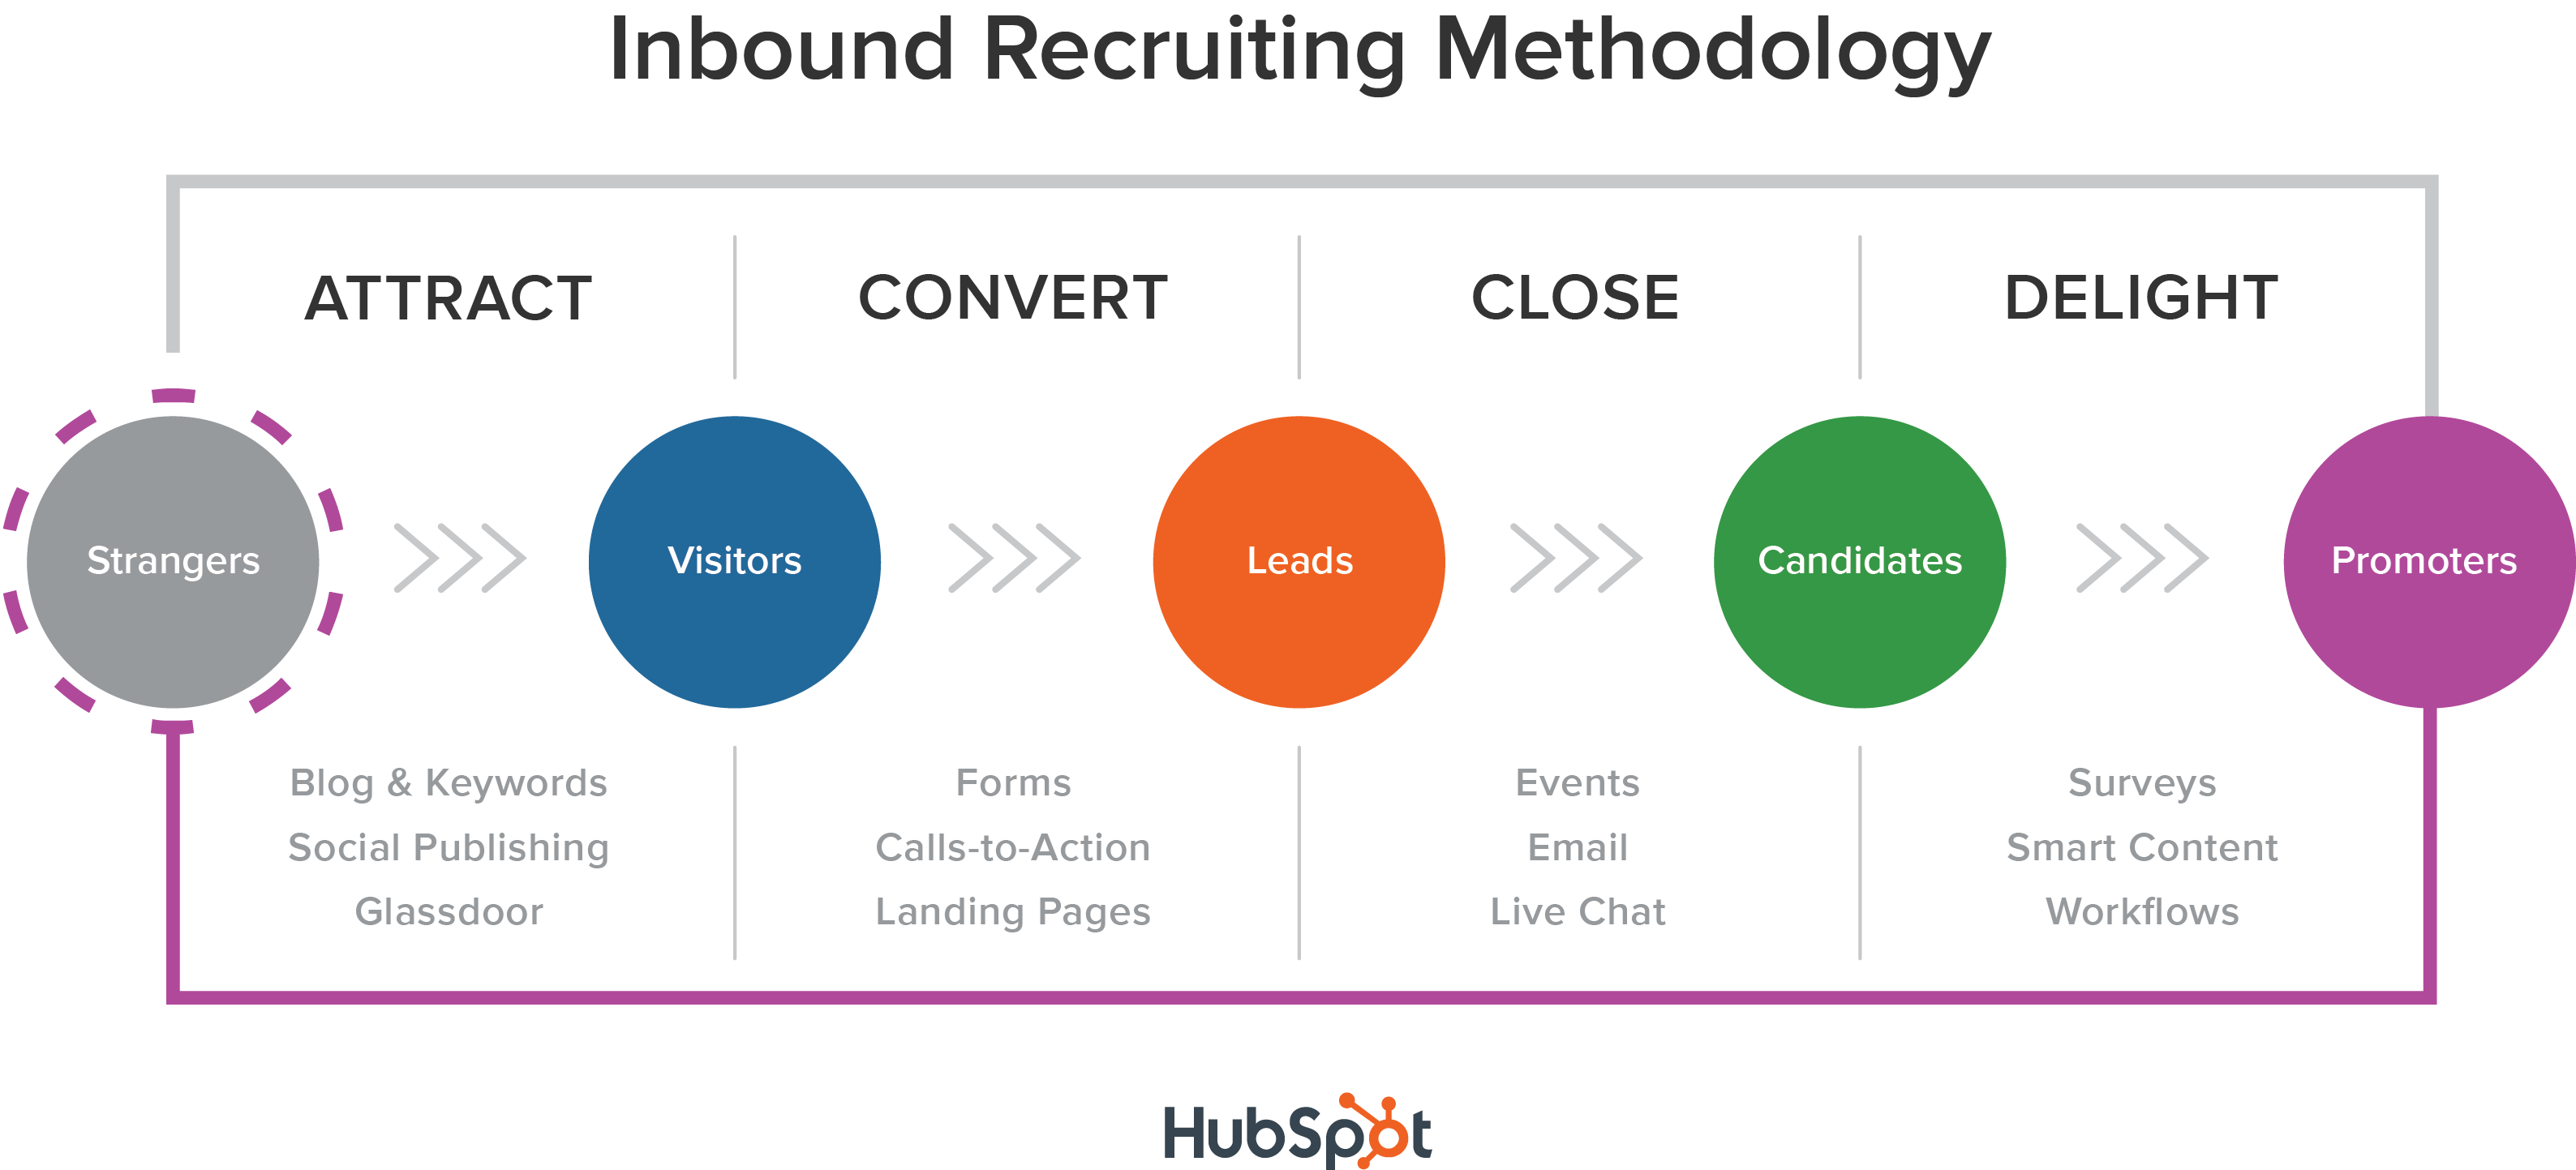 inbound_recruiting_methodology.png